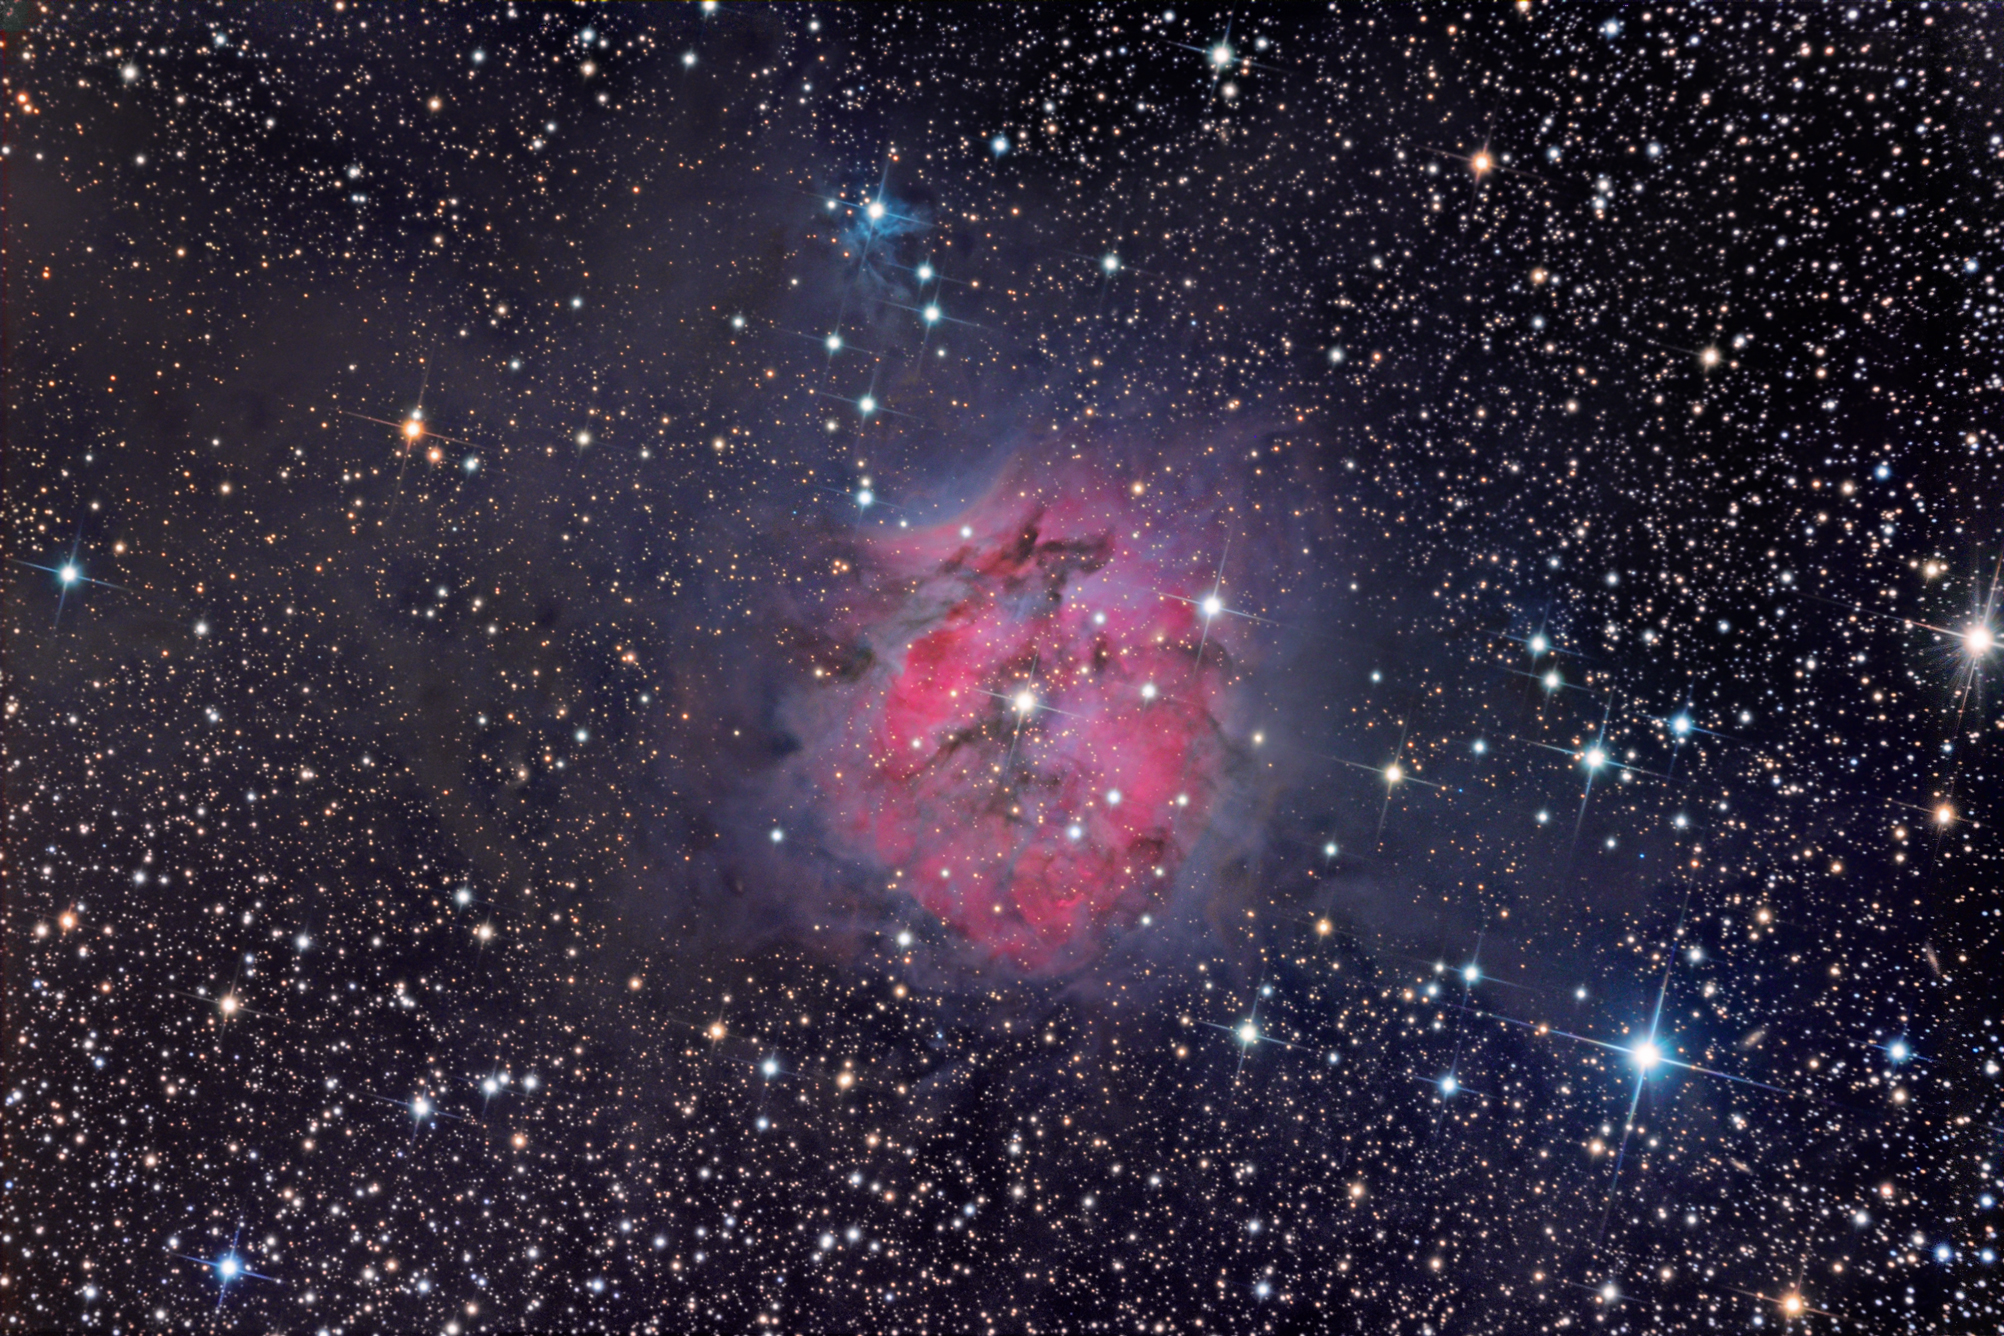 Cocoon Nebula and IC 5146 - Astrodoc: Astrophotography by